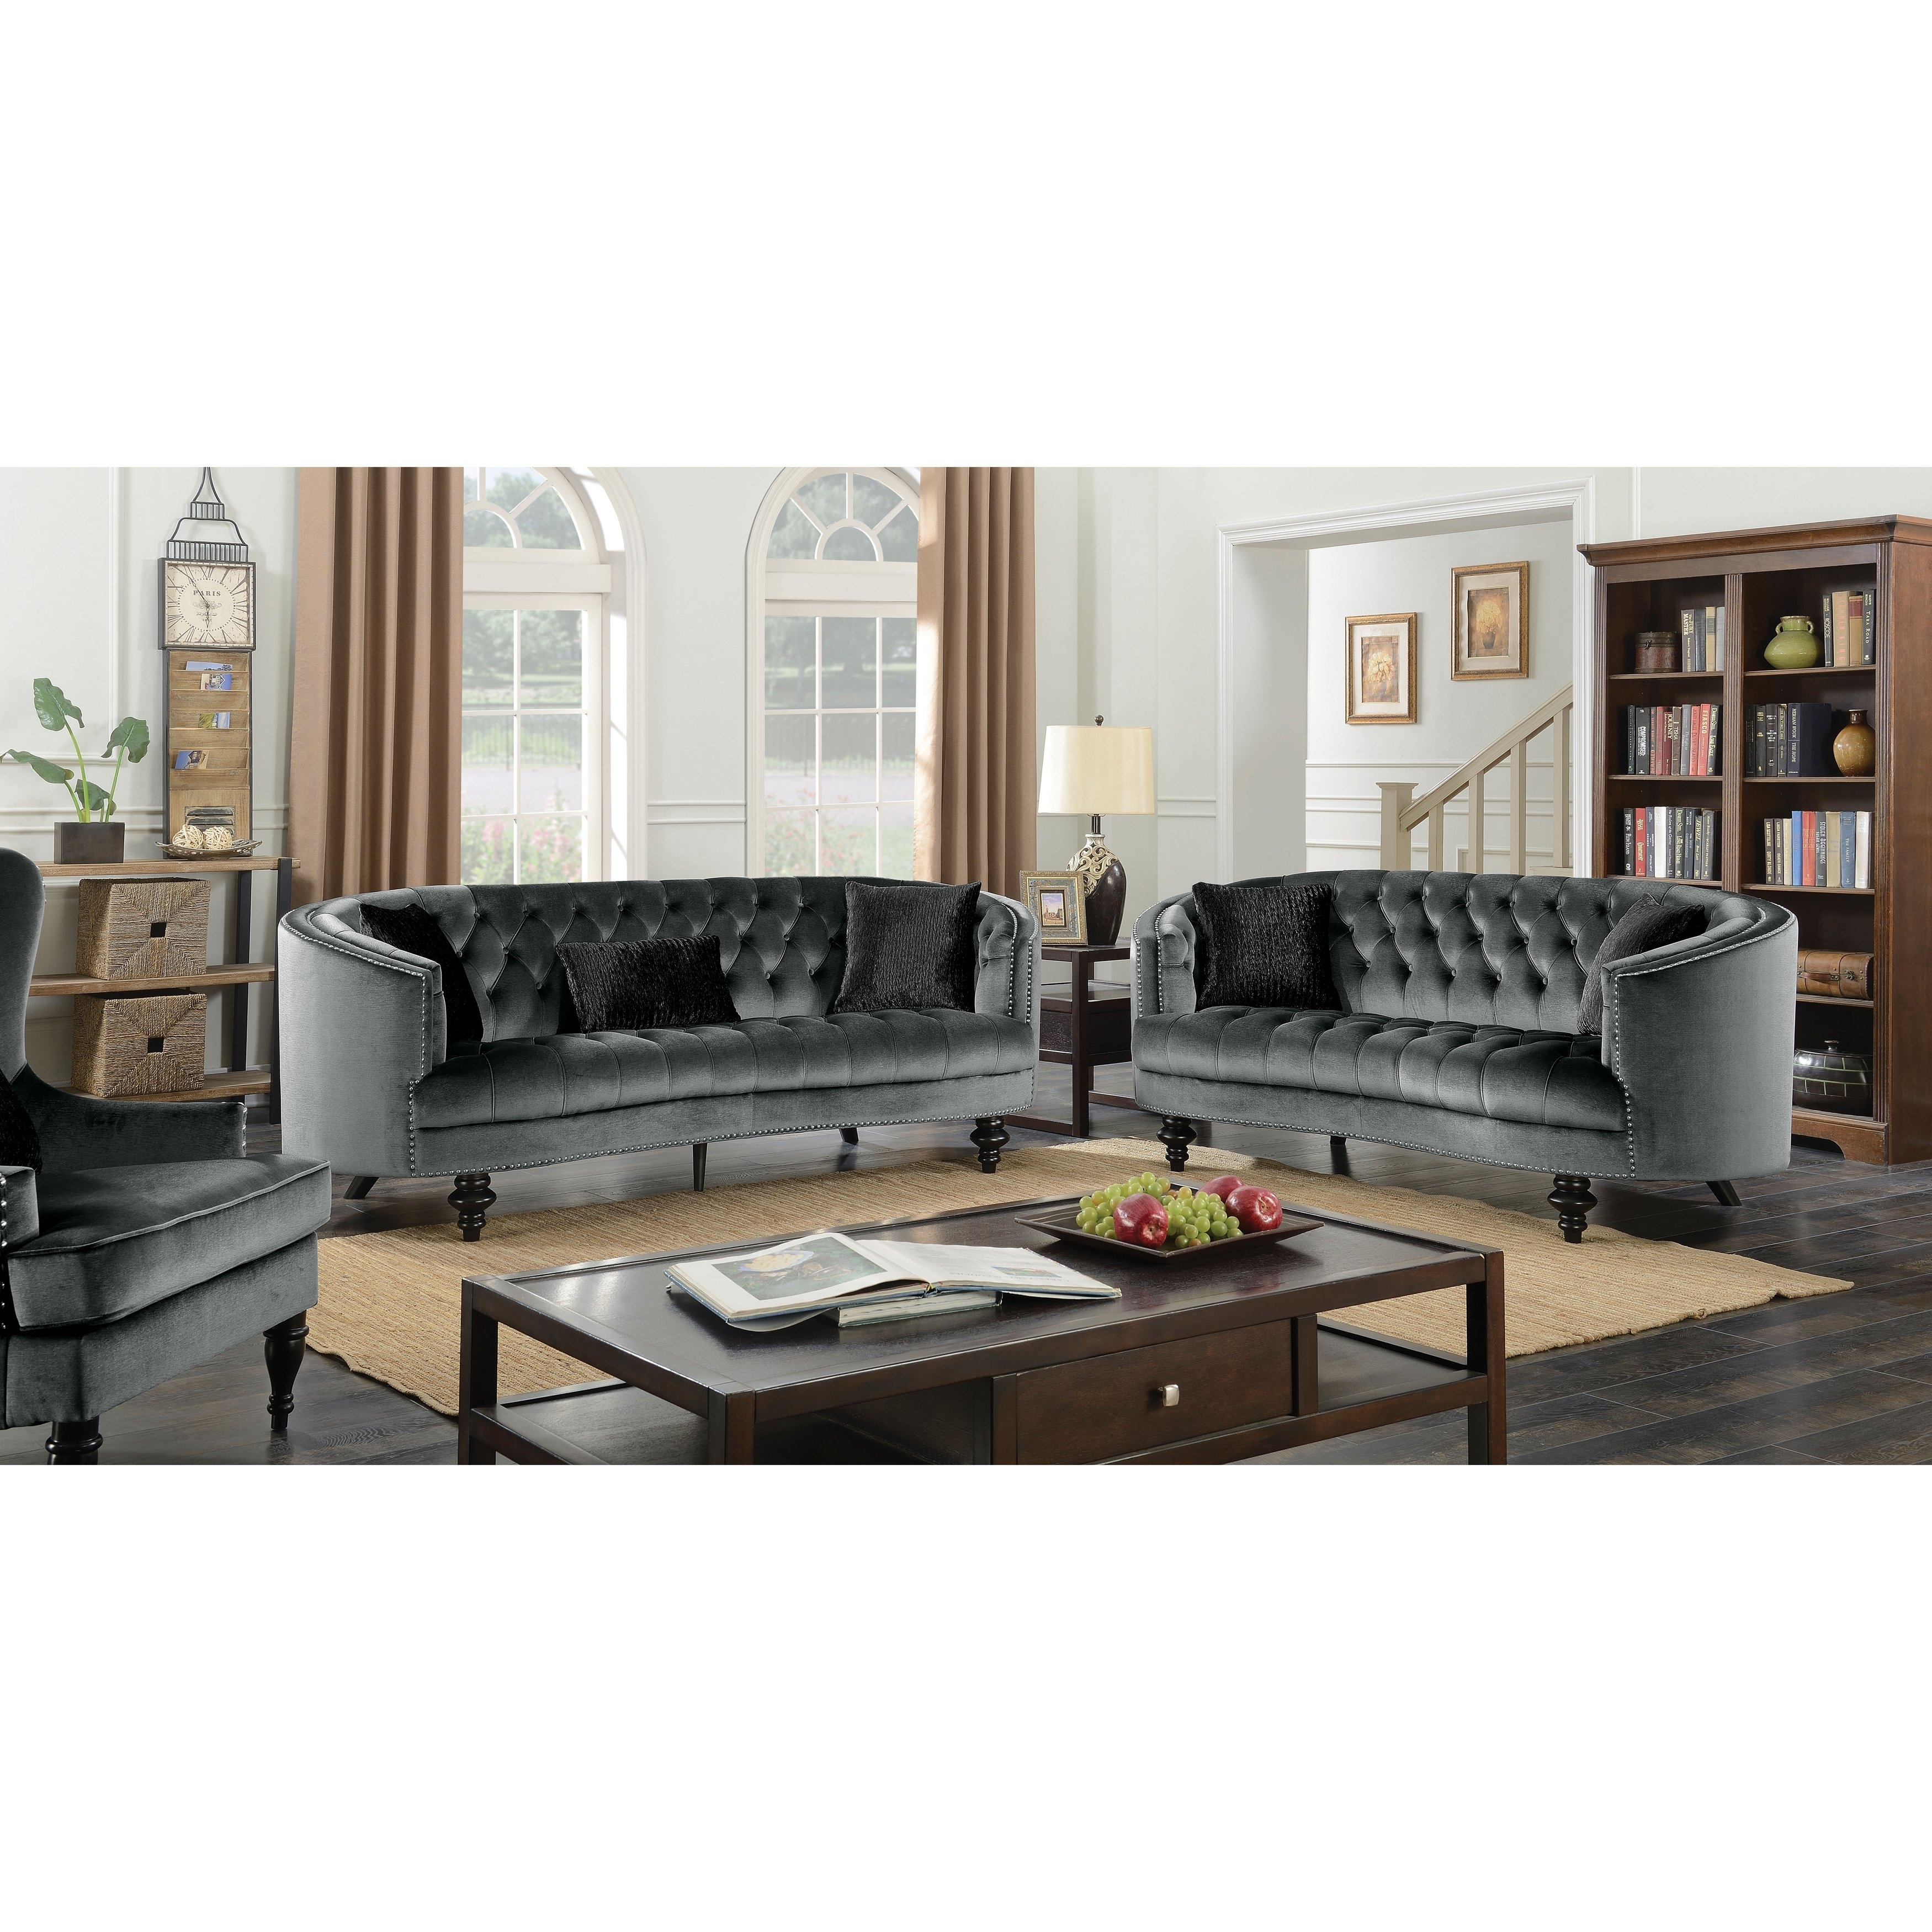 Shop Furniture Of America Sevi Glam 3 Piece Tufted Flannelette Sofa Pertaining To Glamour Ii 3 Piece Sectionals (View 22 of 25)